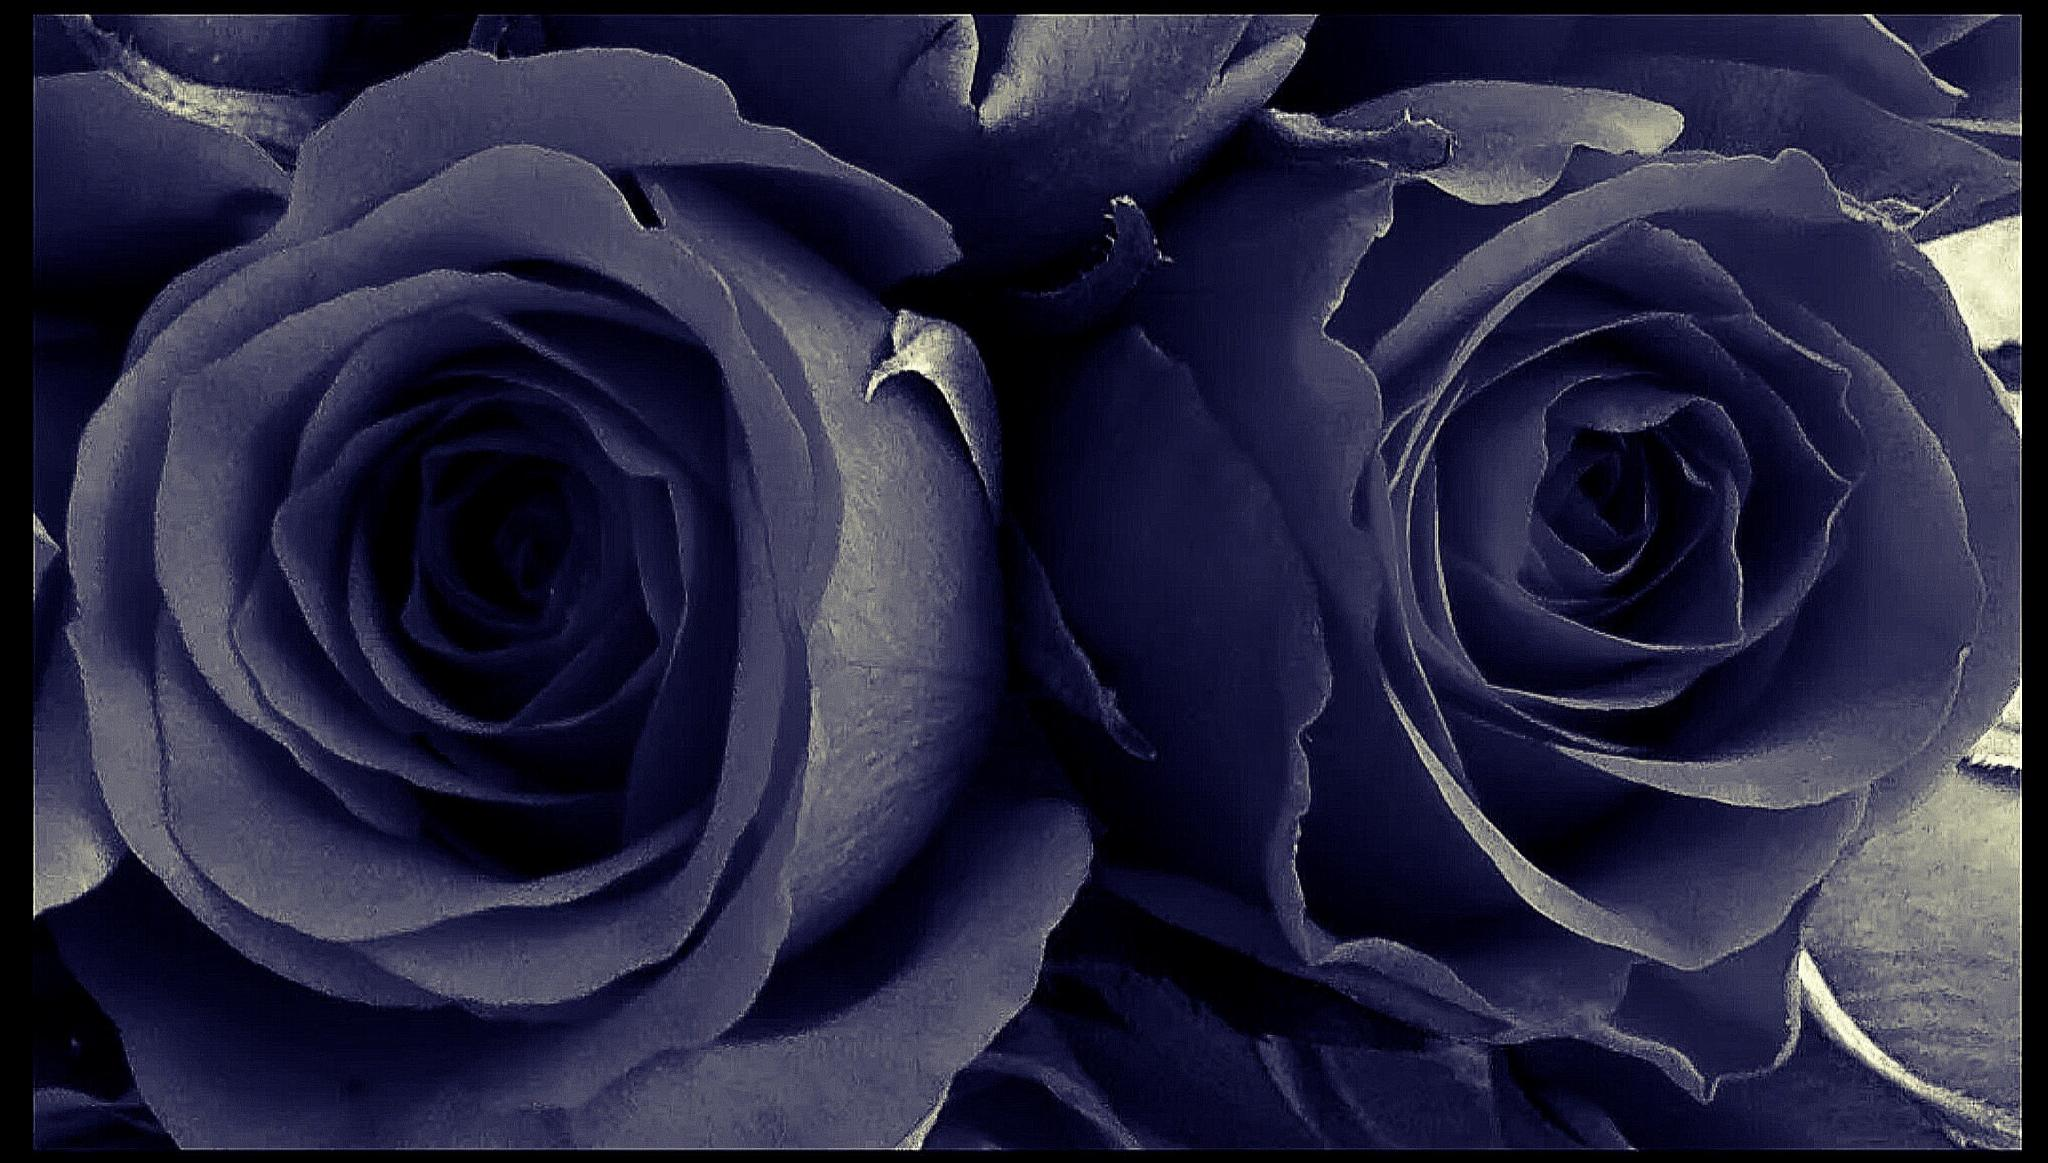 ROSES by lindaj.photogallery